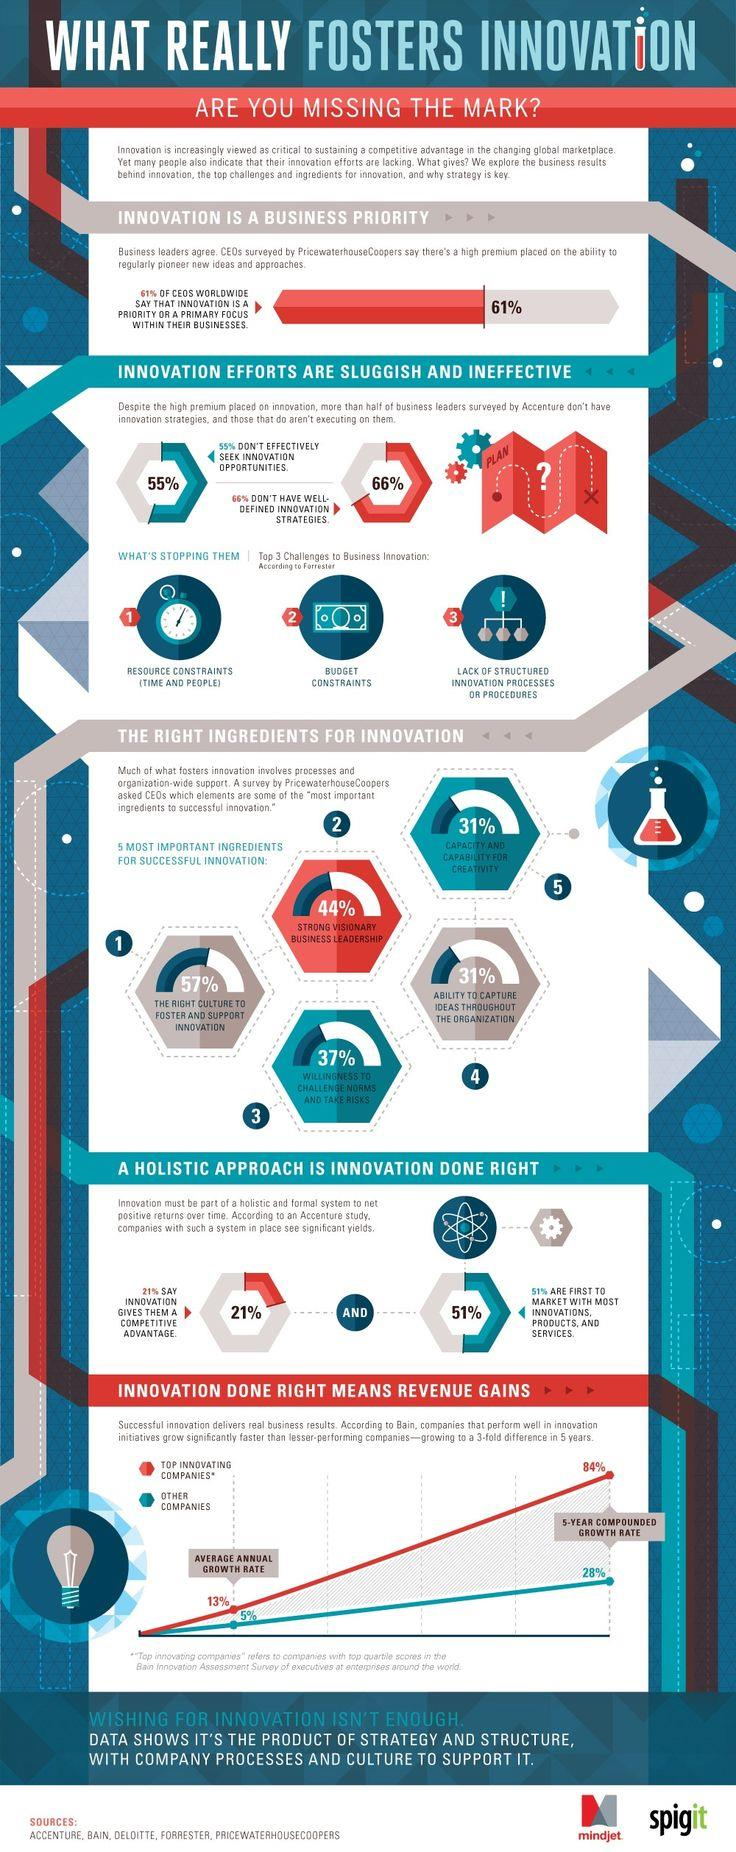 Must-see infographic: What really fosters innovation | News | FIPP com